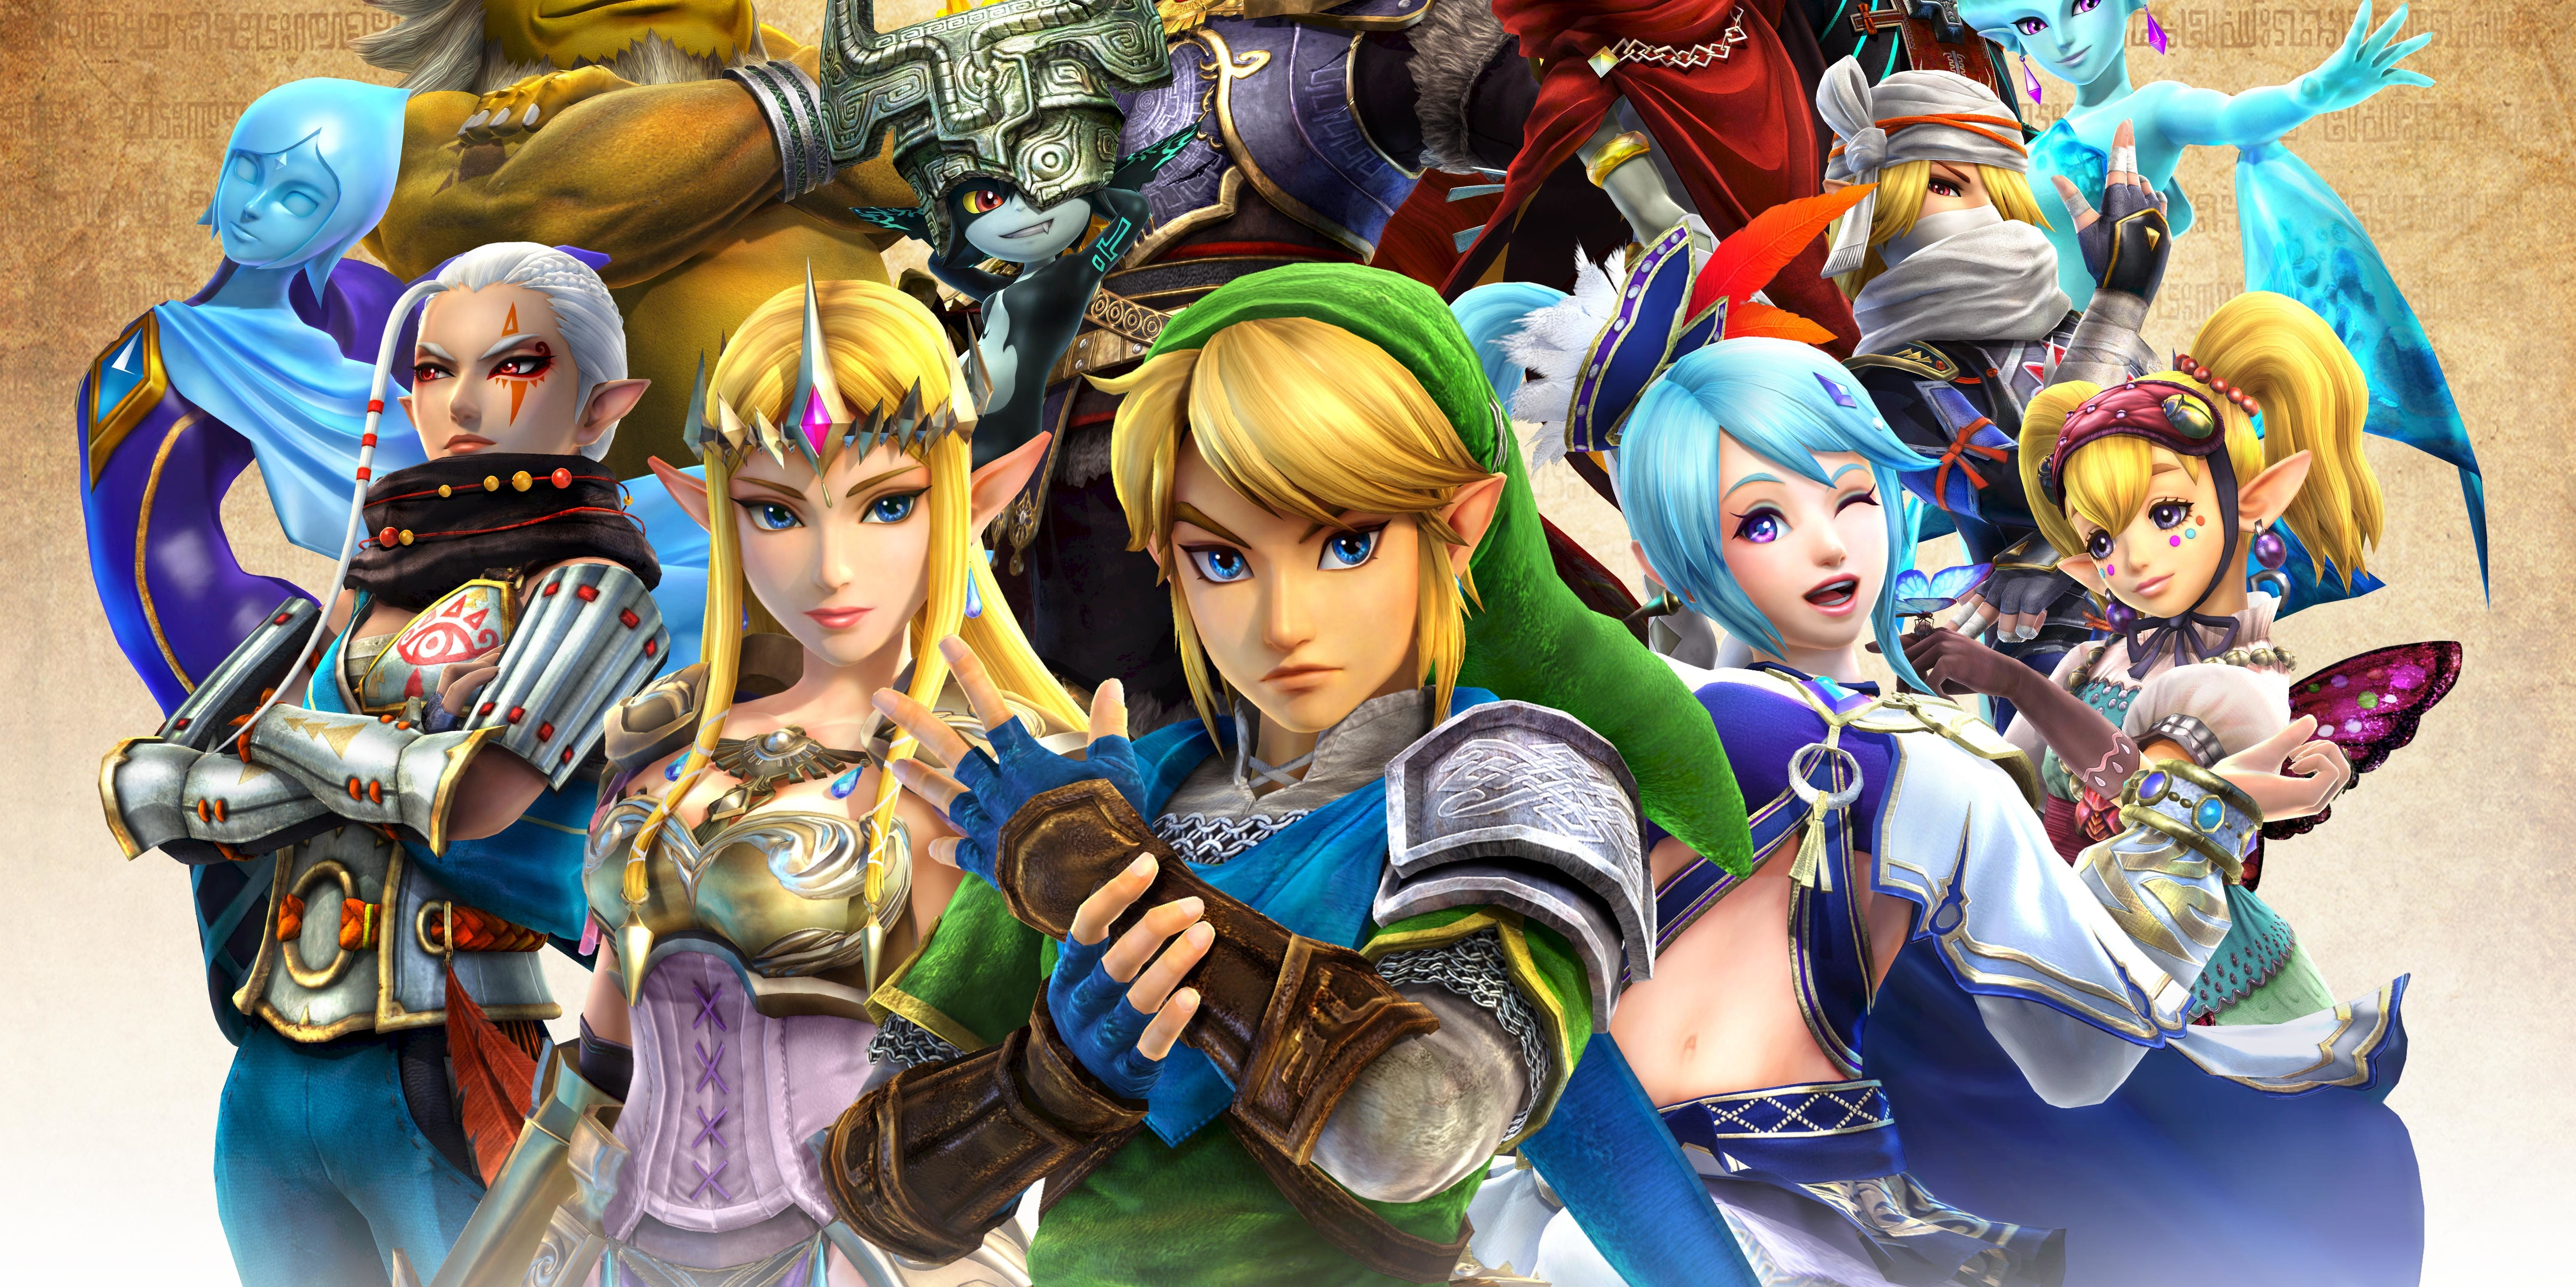 5 Wii U Games We'd Love to See on the Nintendo Switch